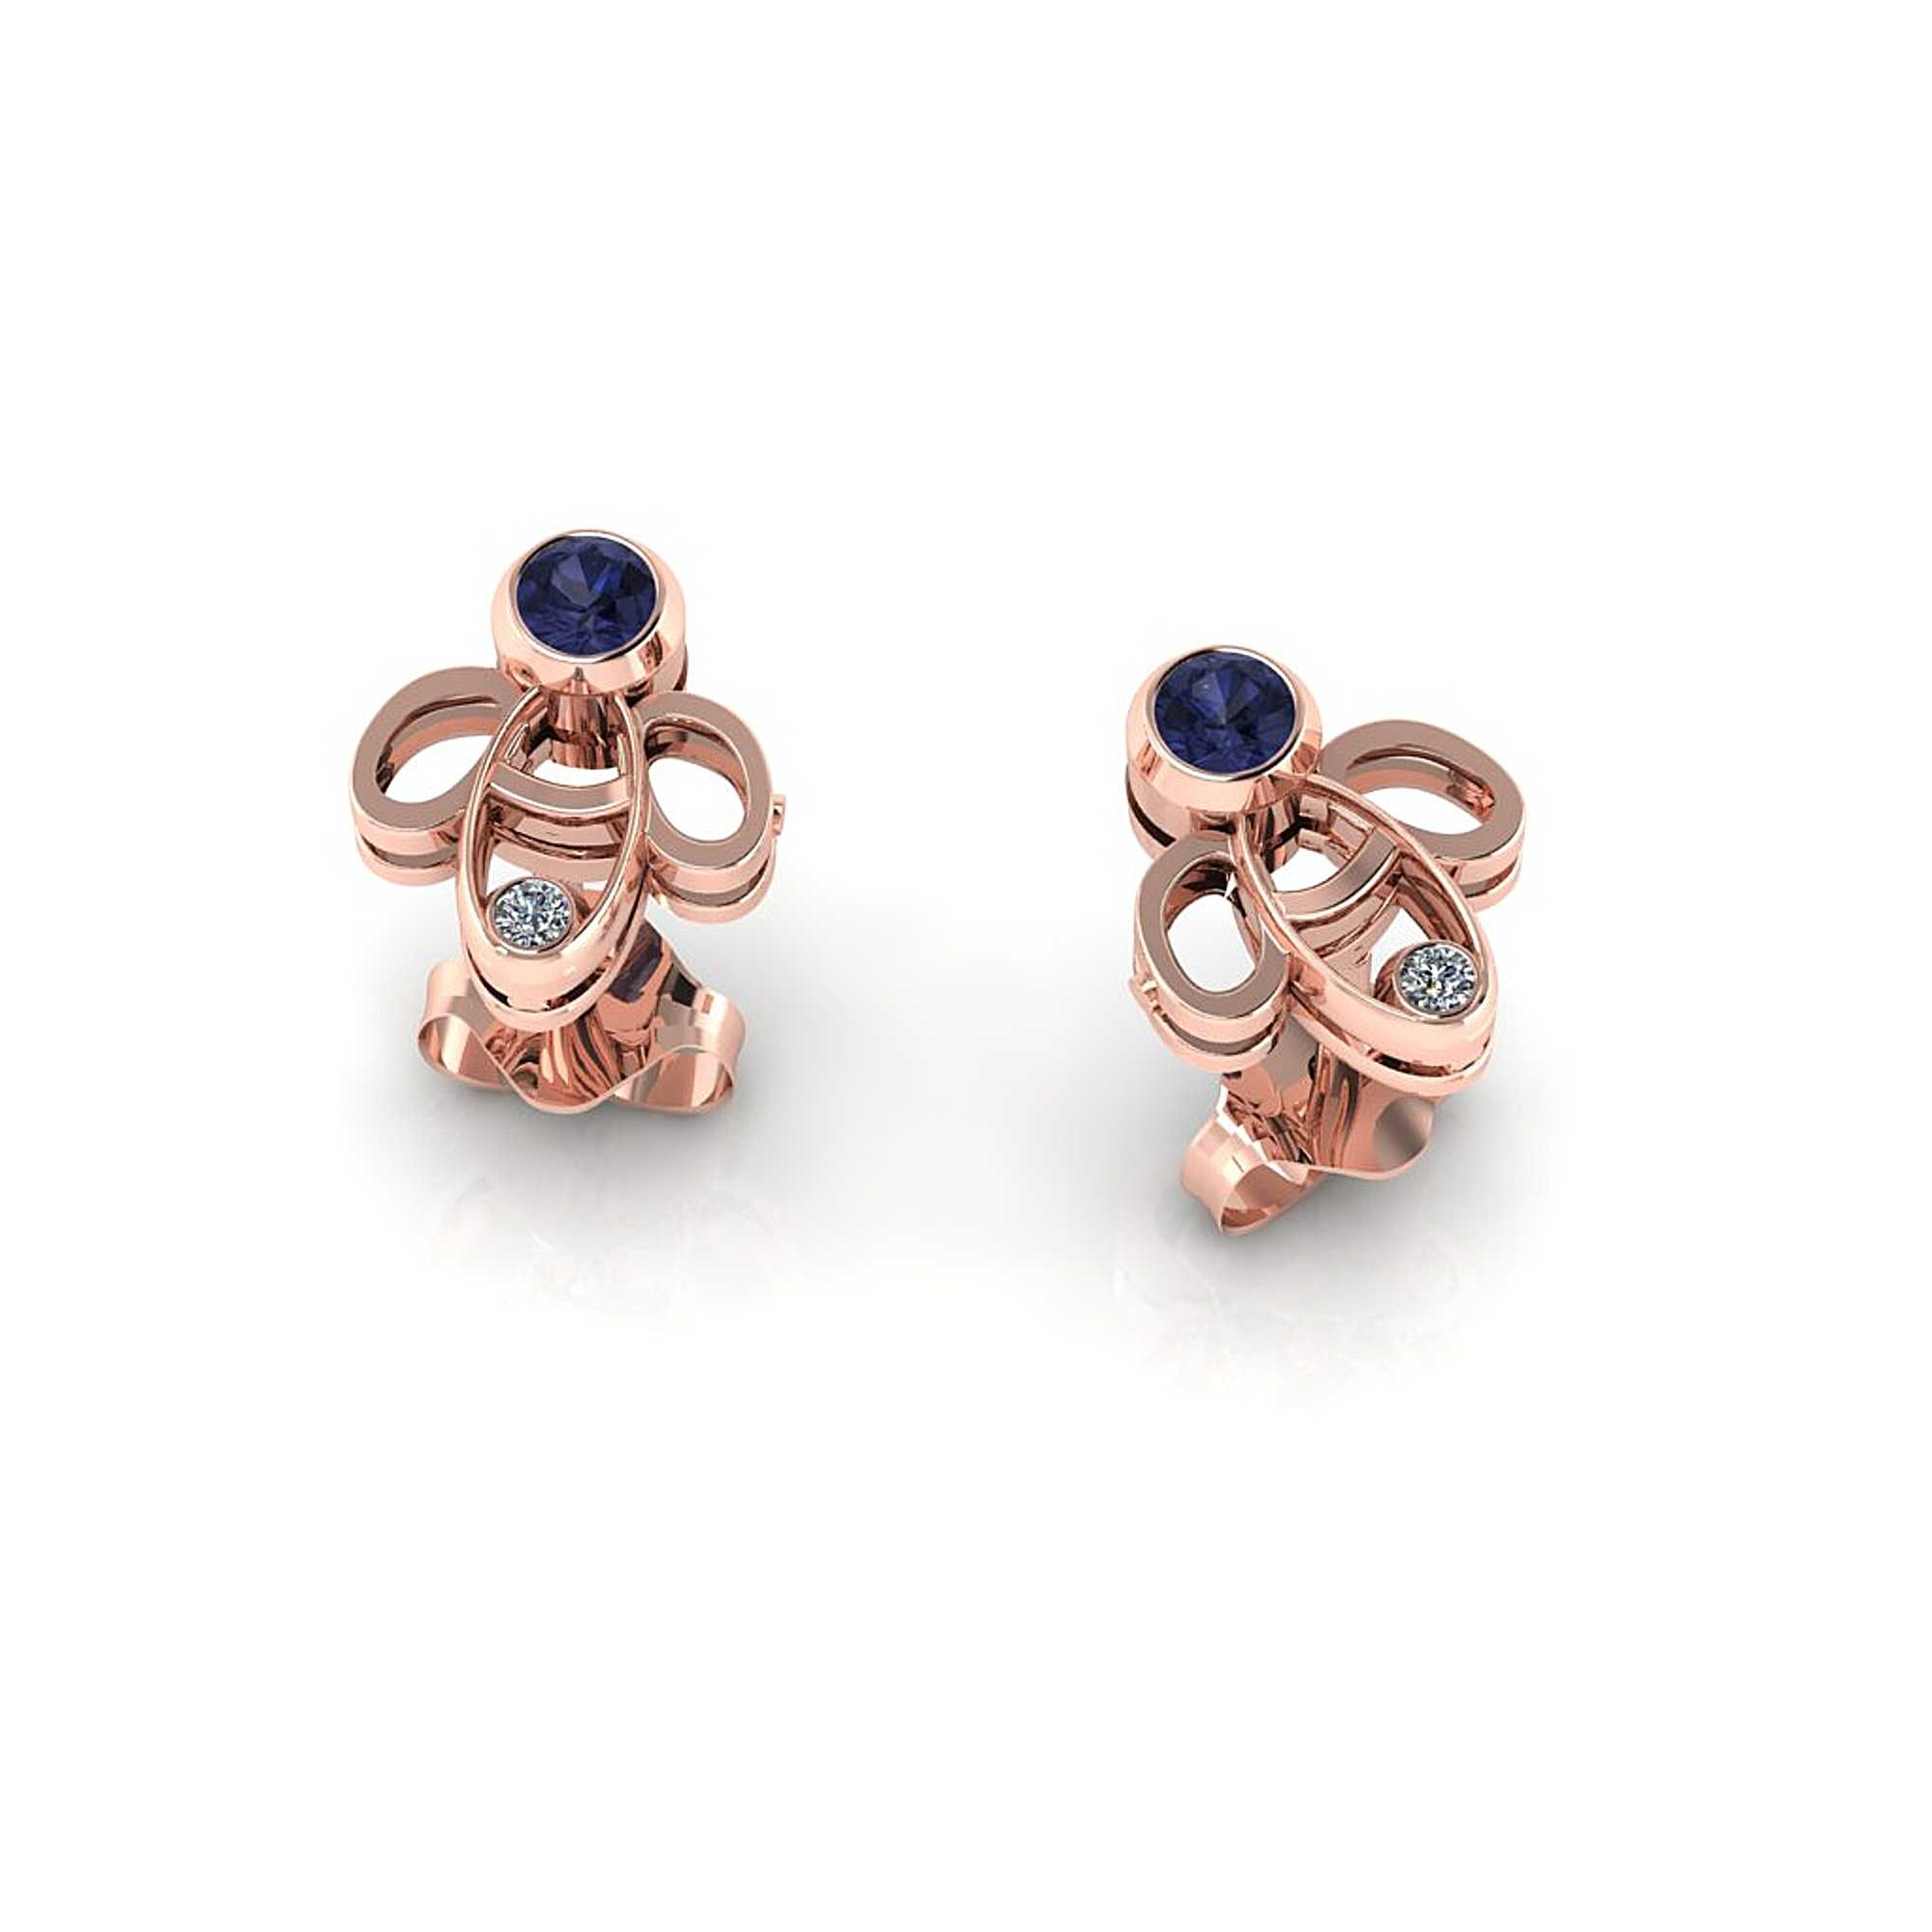 Mouche Earrings